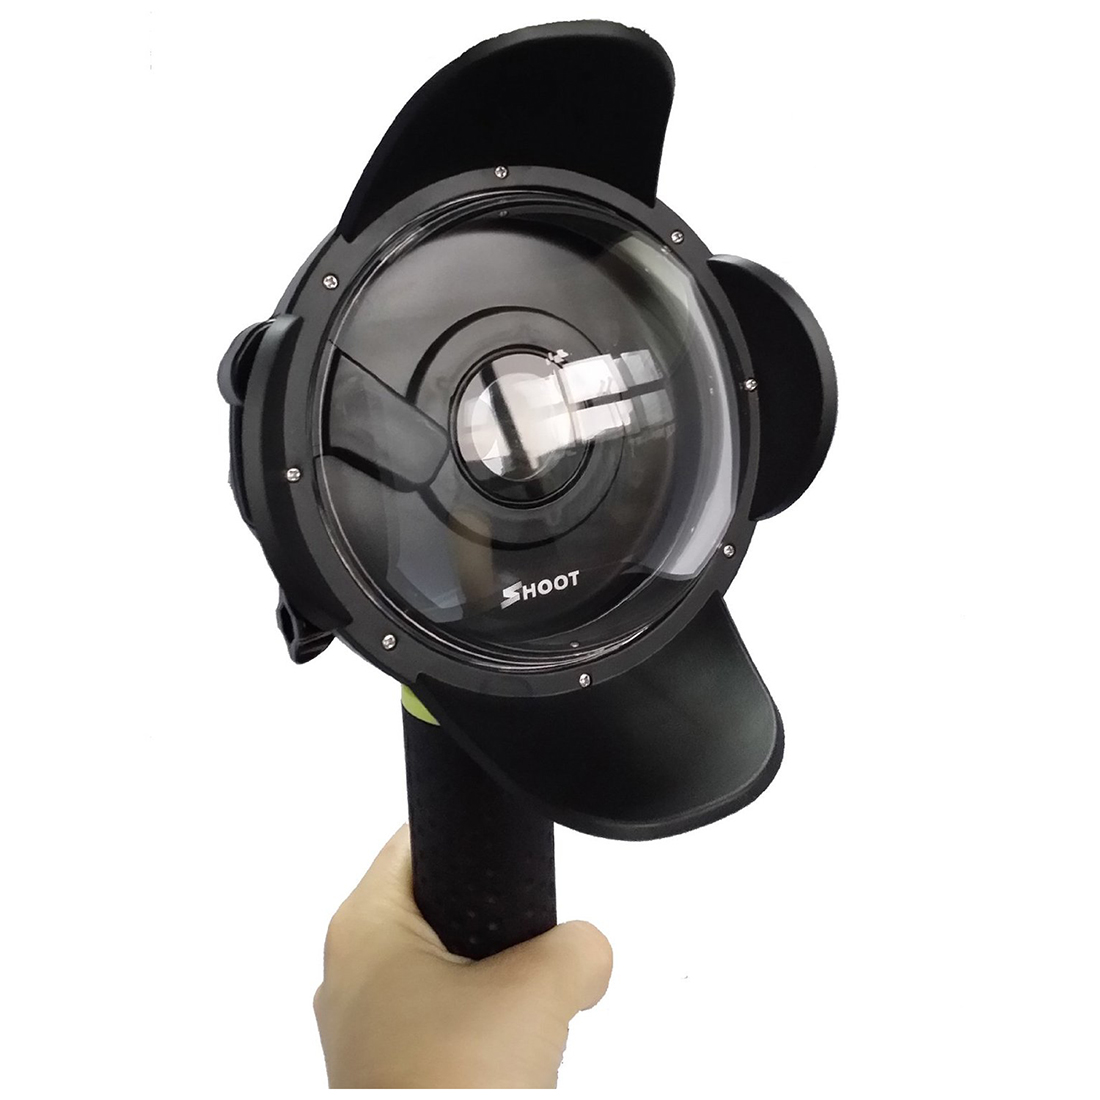 SHOOT 4 inch Diving Underwater Lens Hood Transparent Dome Lens Housing Dome Port for Camera Underwater